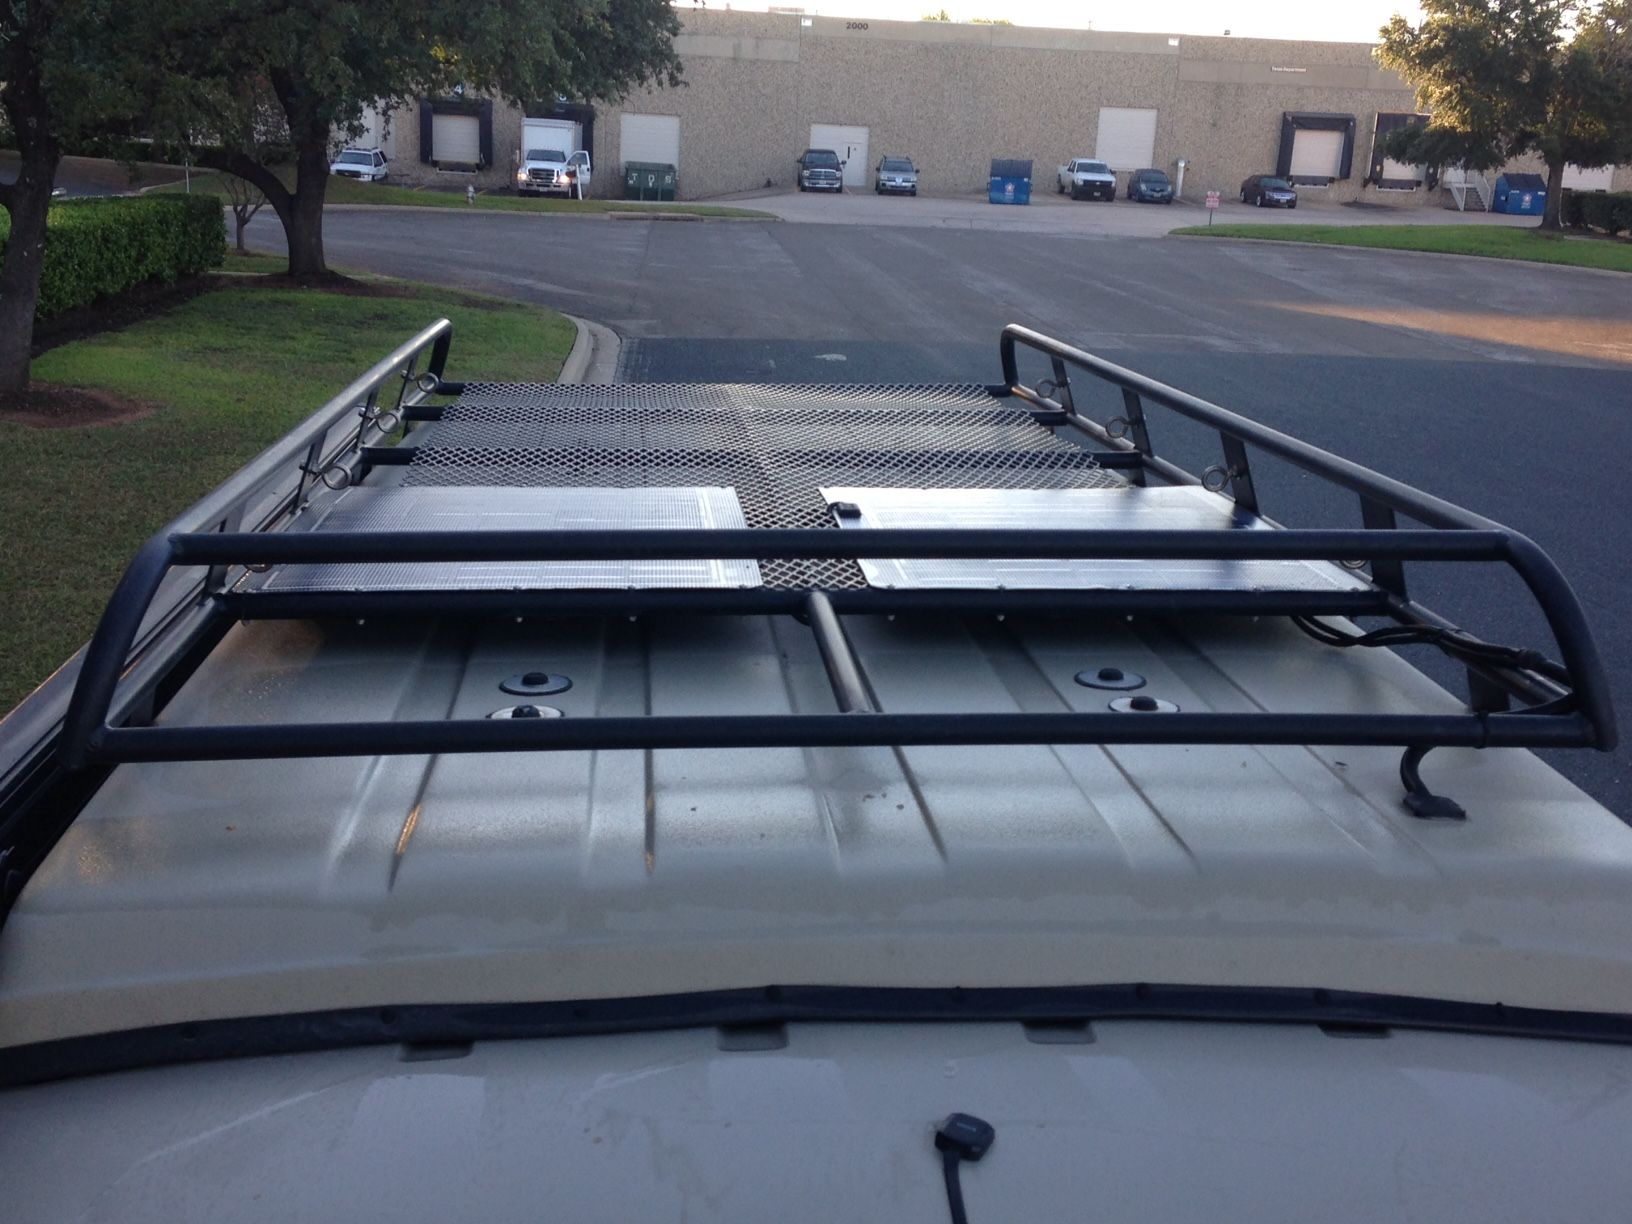 Sportsmobile with Aluminess roof rack on penthouse top